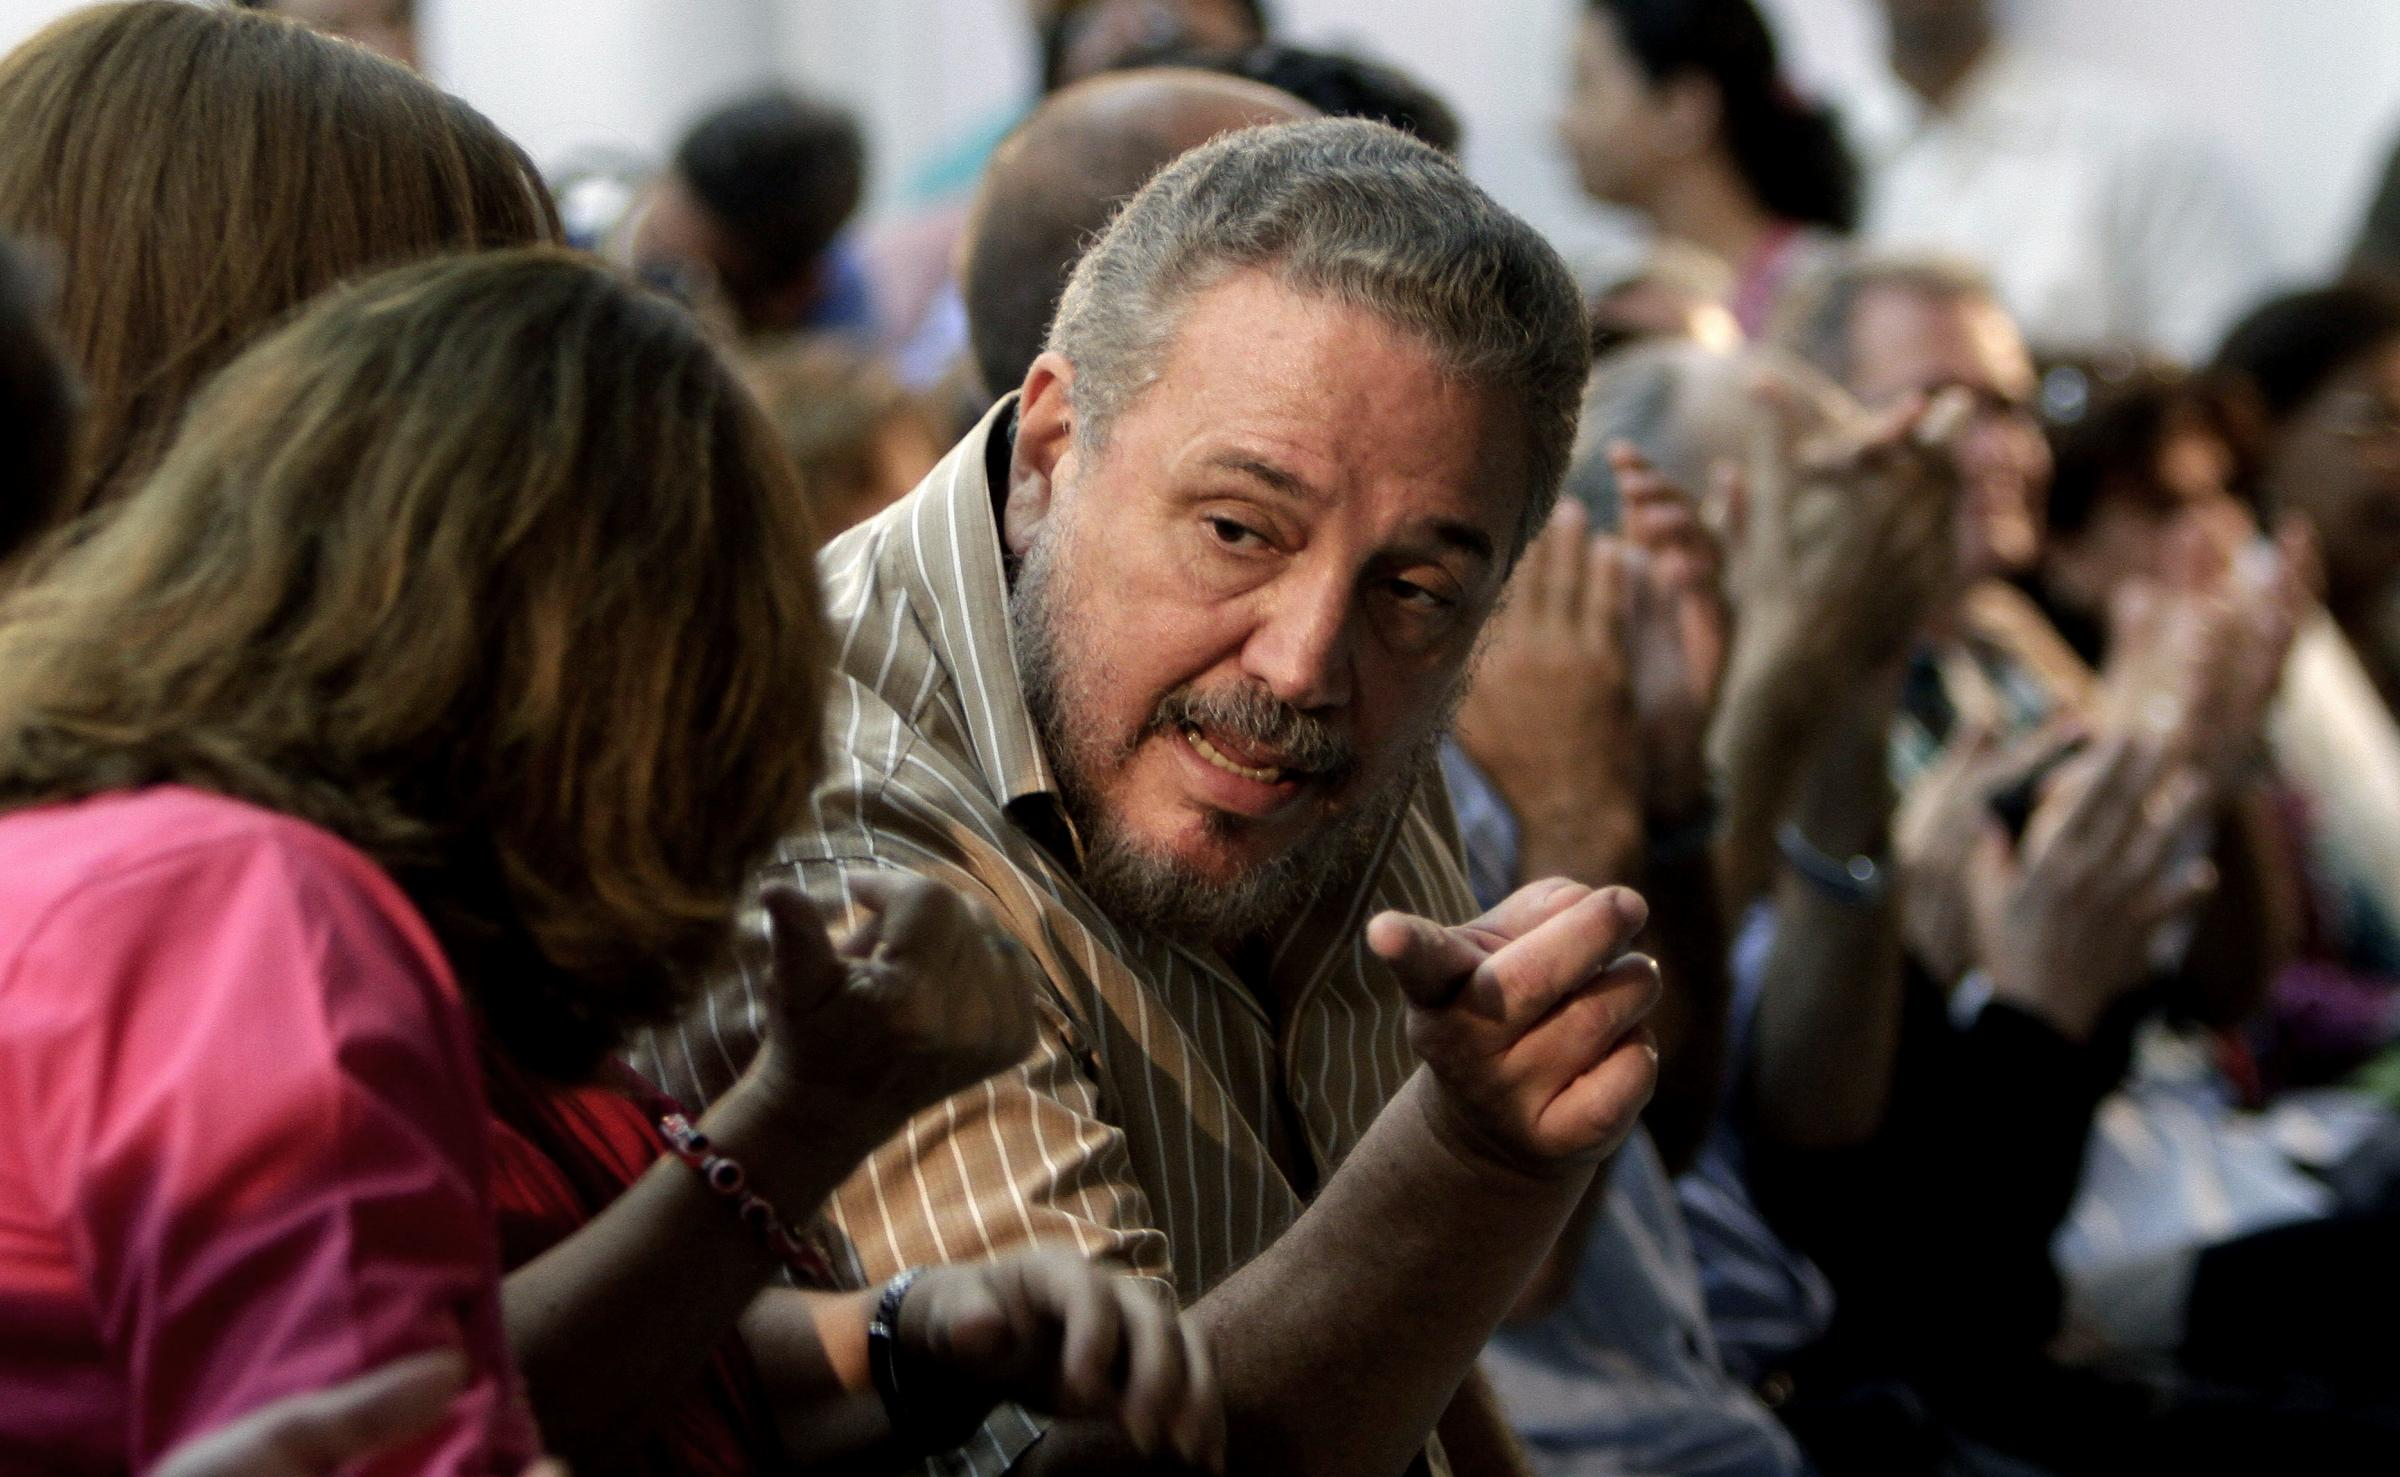 Fidel Castro Diaz-Balart, son of then Cuban leader Fidel Castro, speaks during the presentation of his father's book